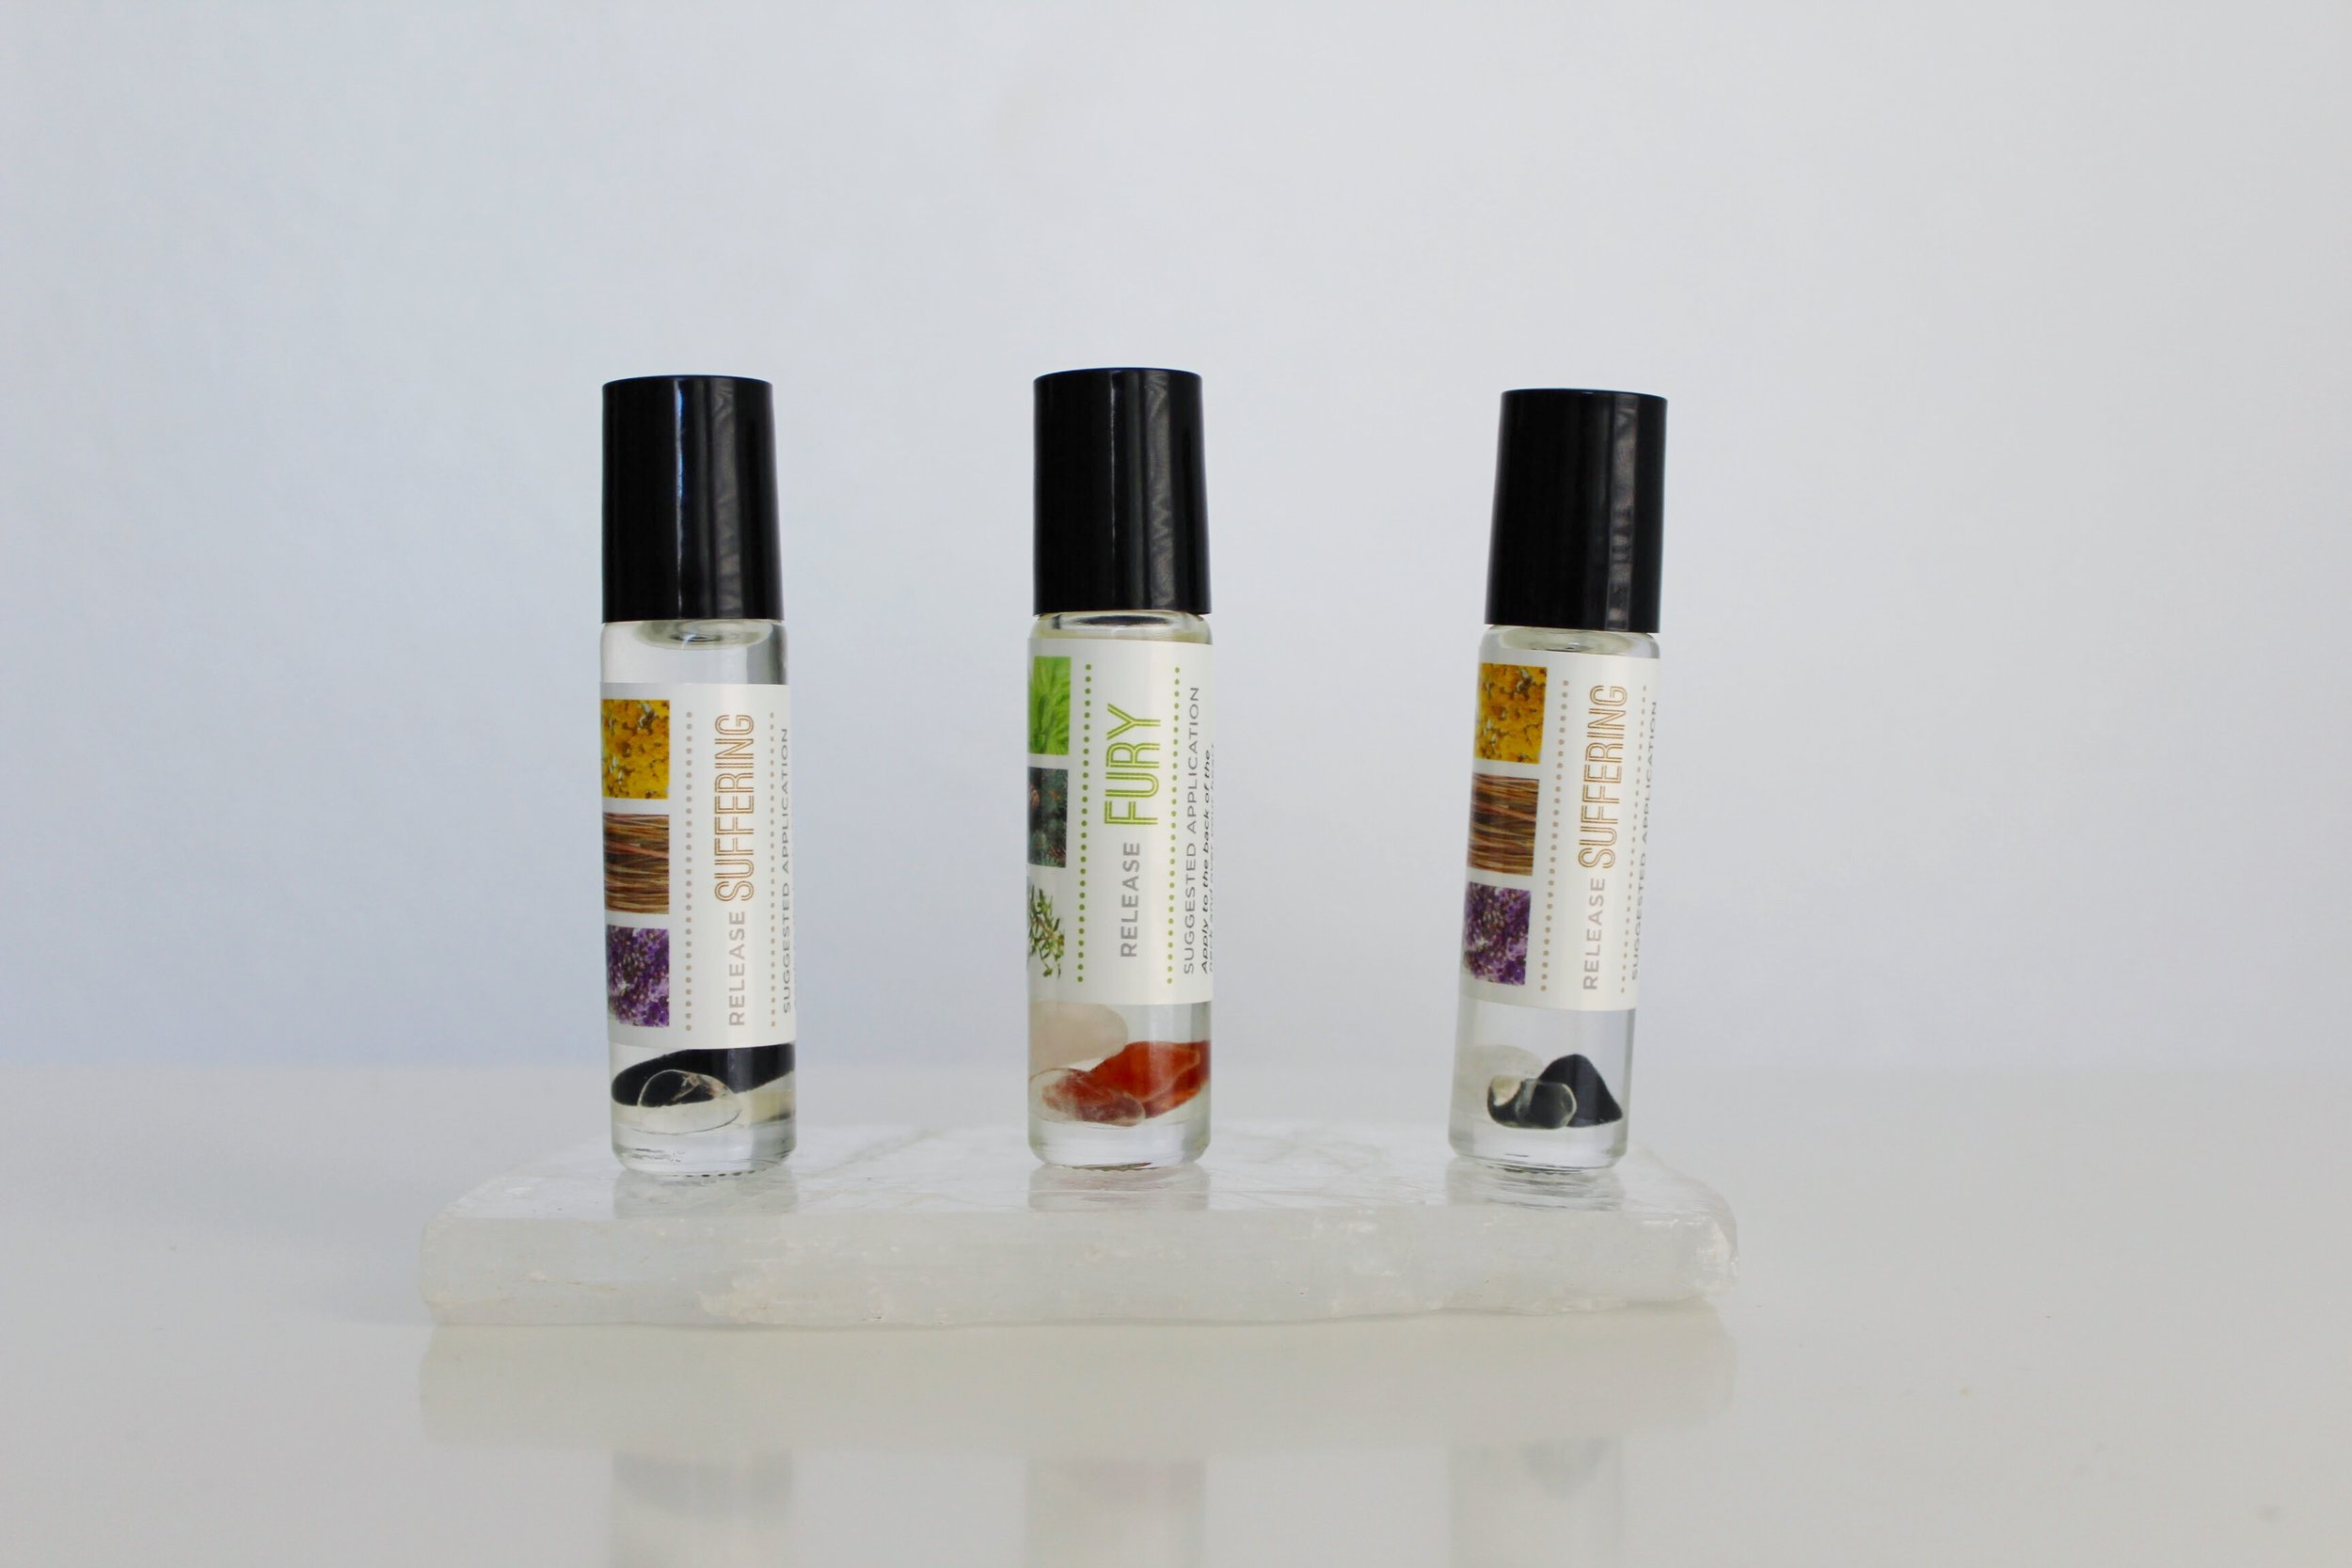 Dealing with Suffering and Fury. DoTerra Special oil Blends to deal with personal issues.